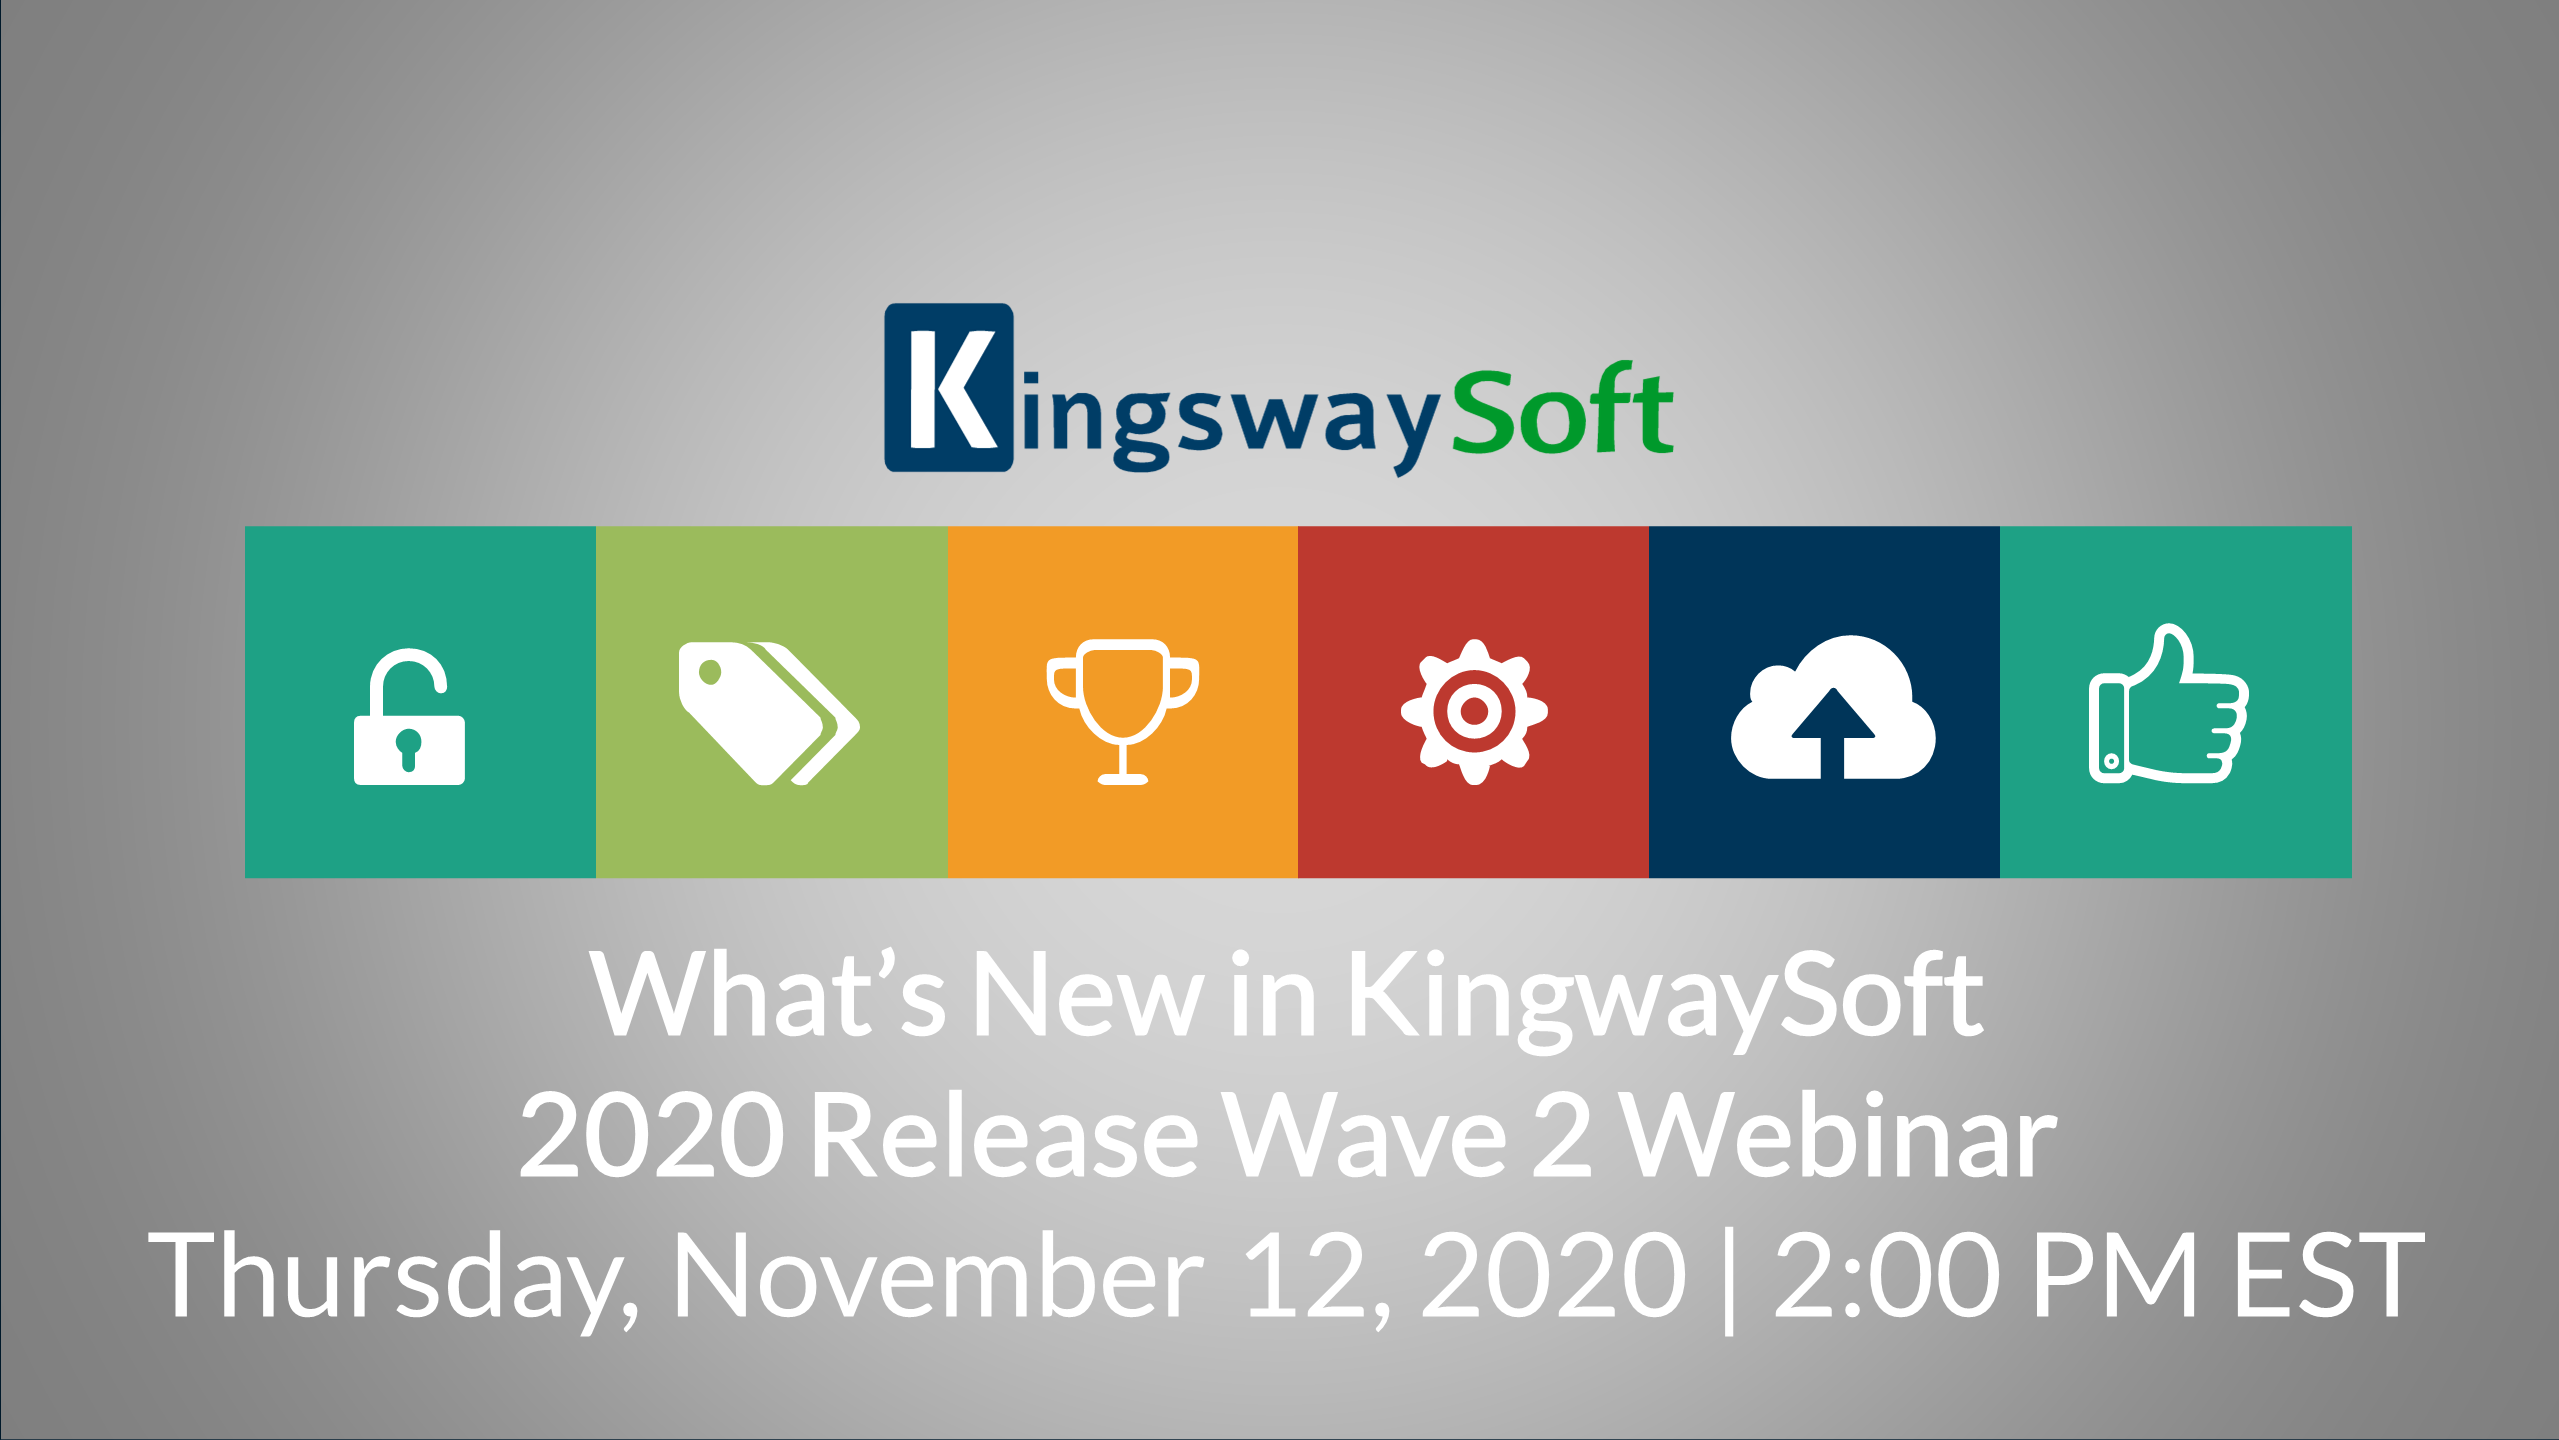 KingswaySoft 2020 Release Wave 2 Demonstration Webinar